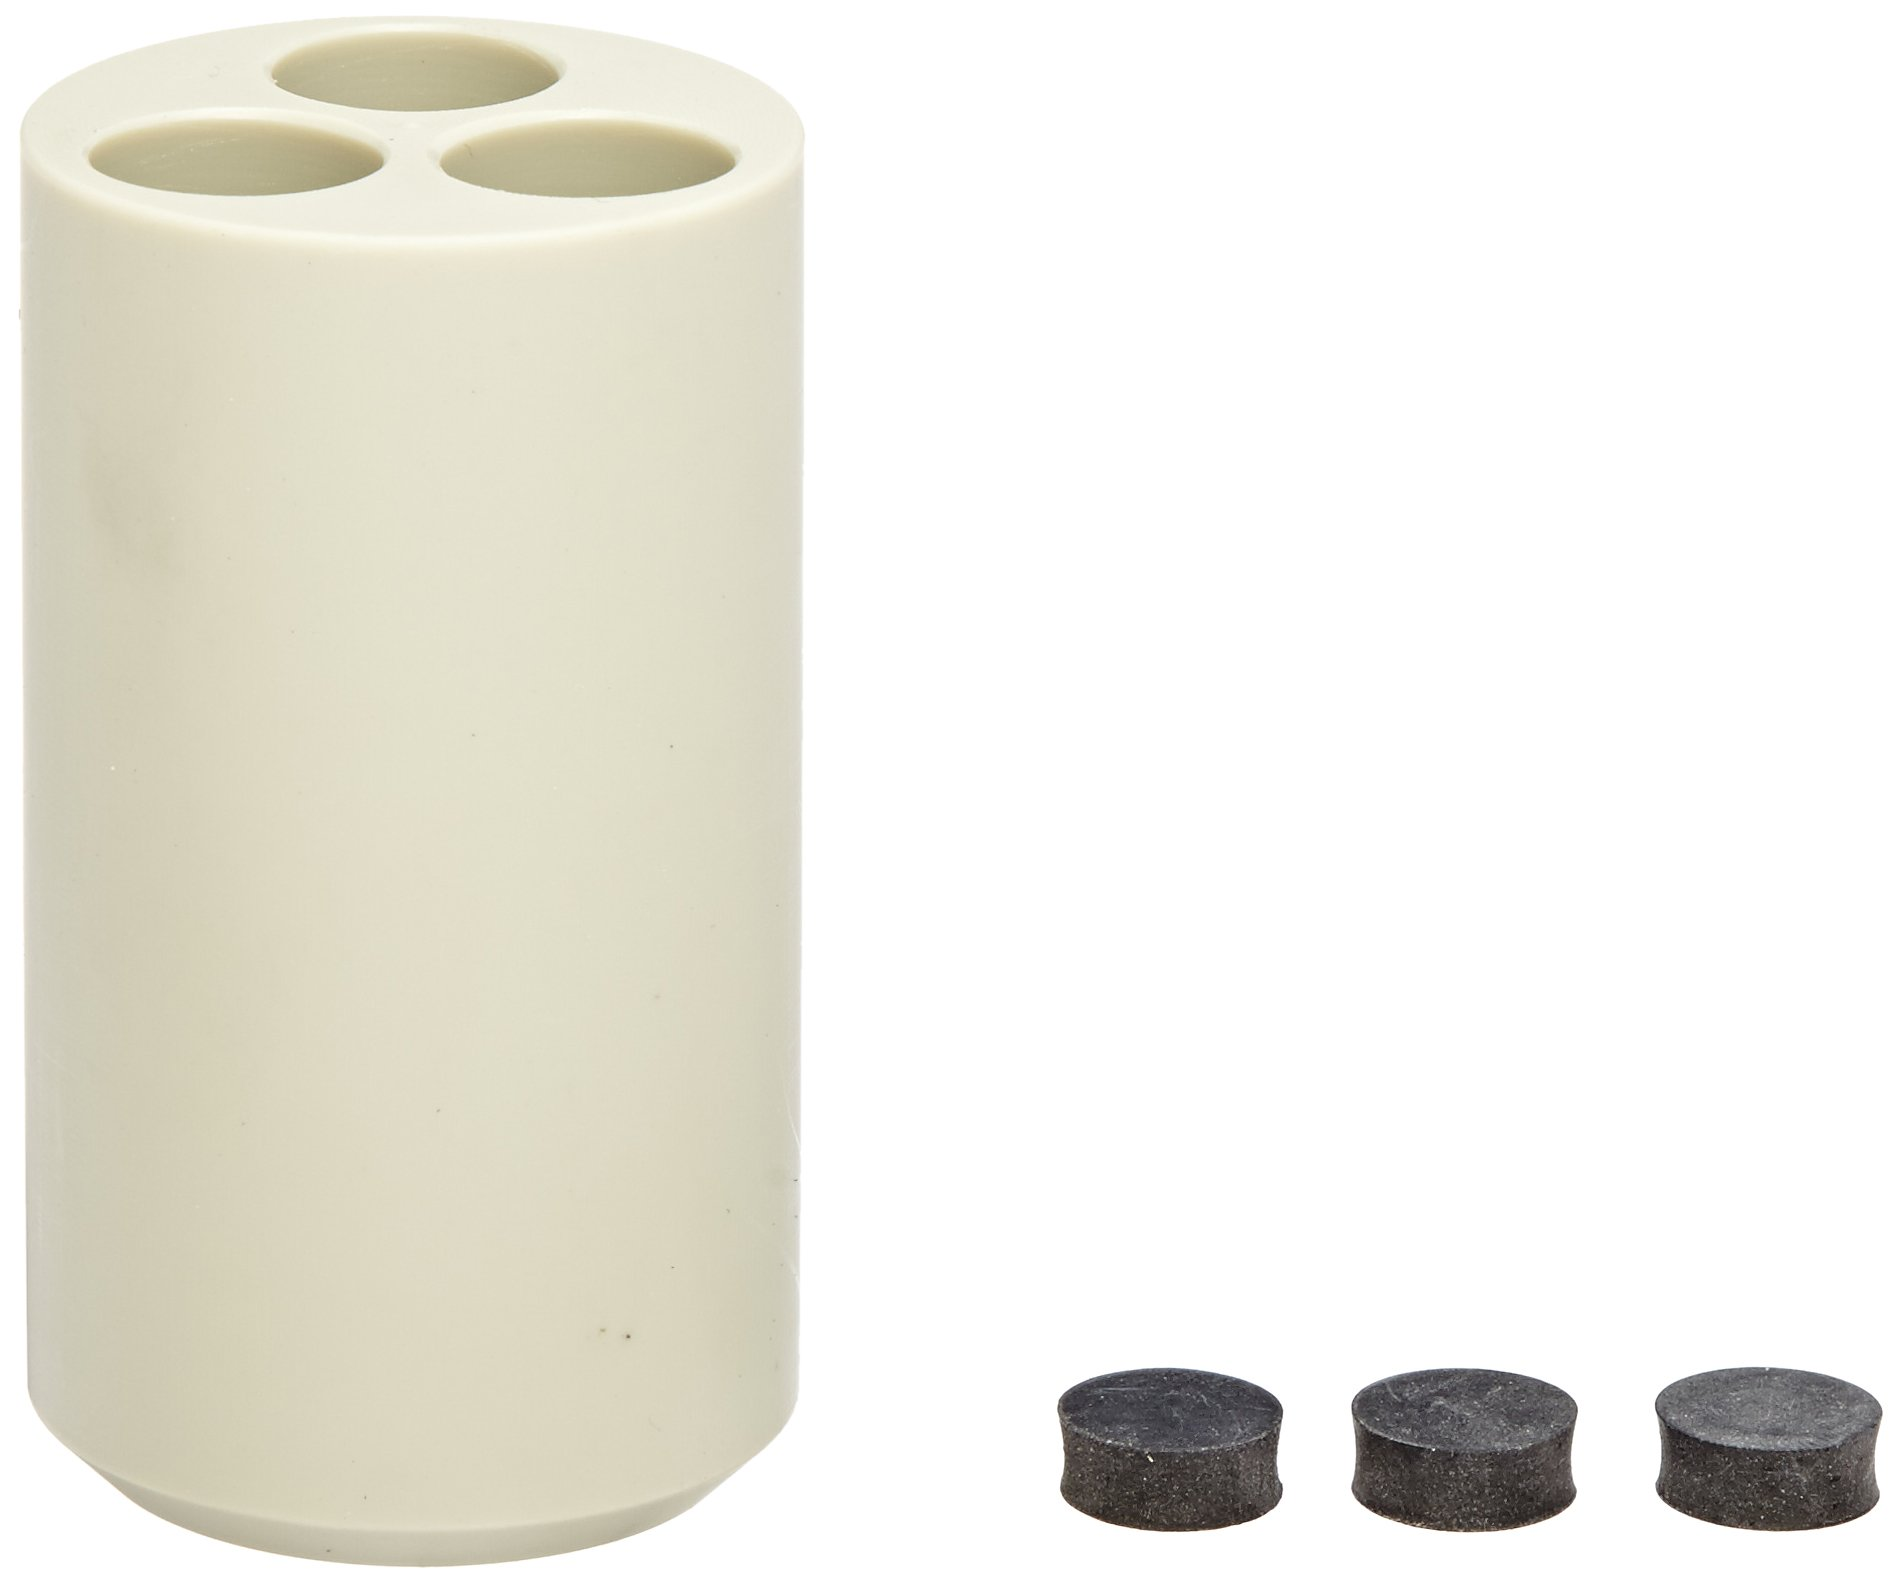 Thermo Scientific Adapter, 3 x 7mL Blood Collection Tubes